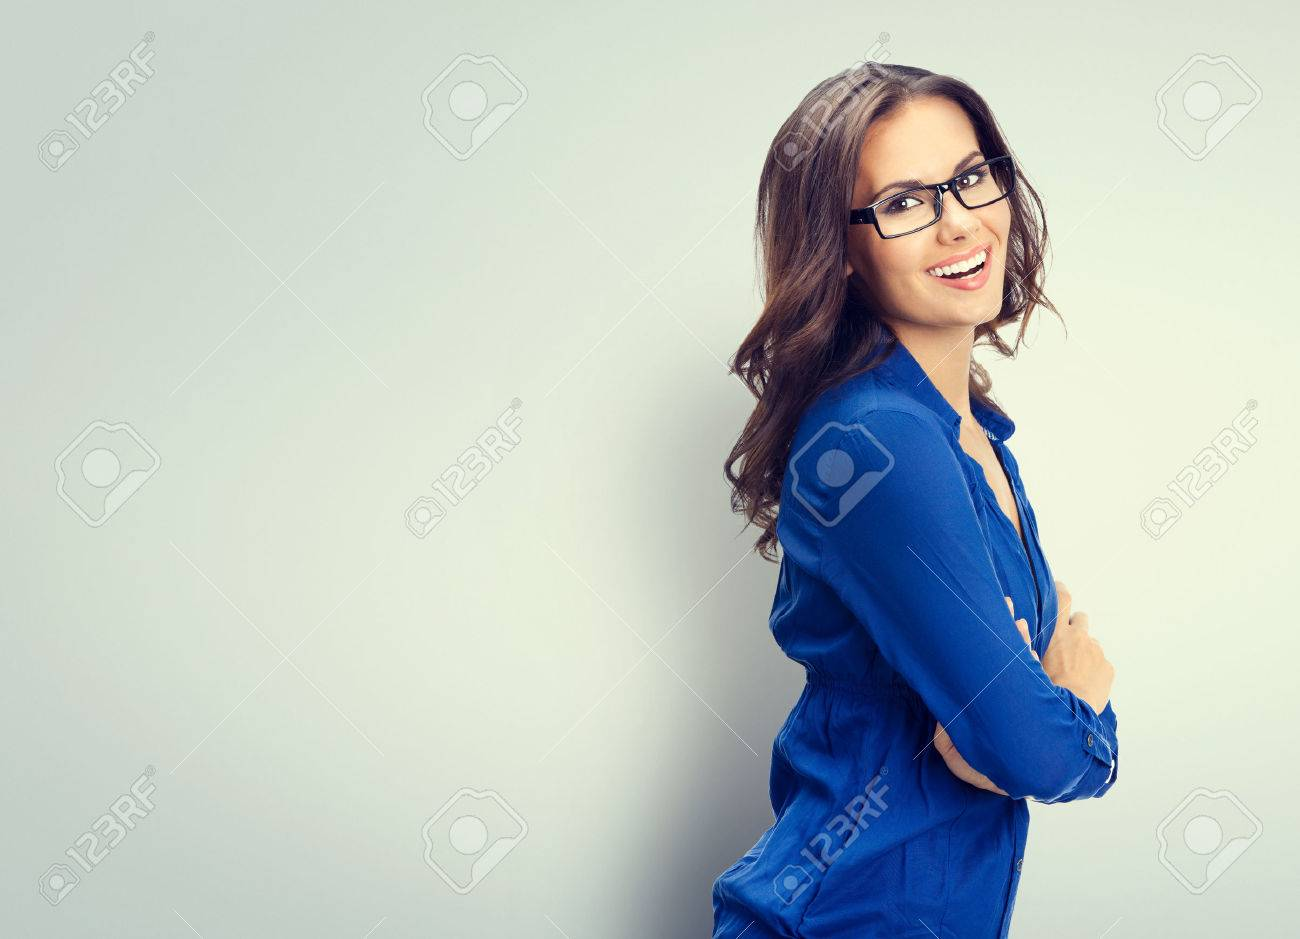 Cheerful smiling young businesswoman in glasses, with blank copyspace area for slogan or text Banque d'images - 41223488